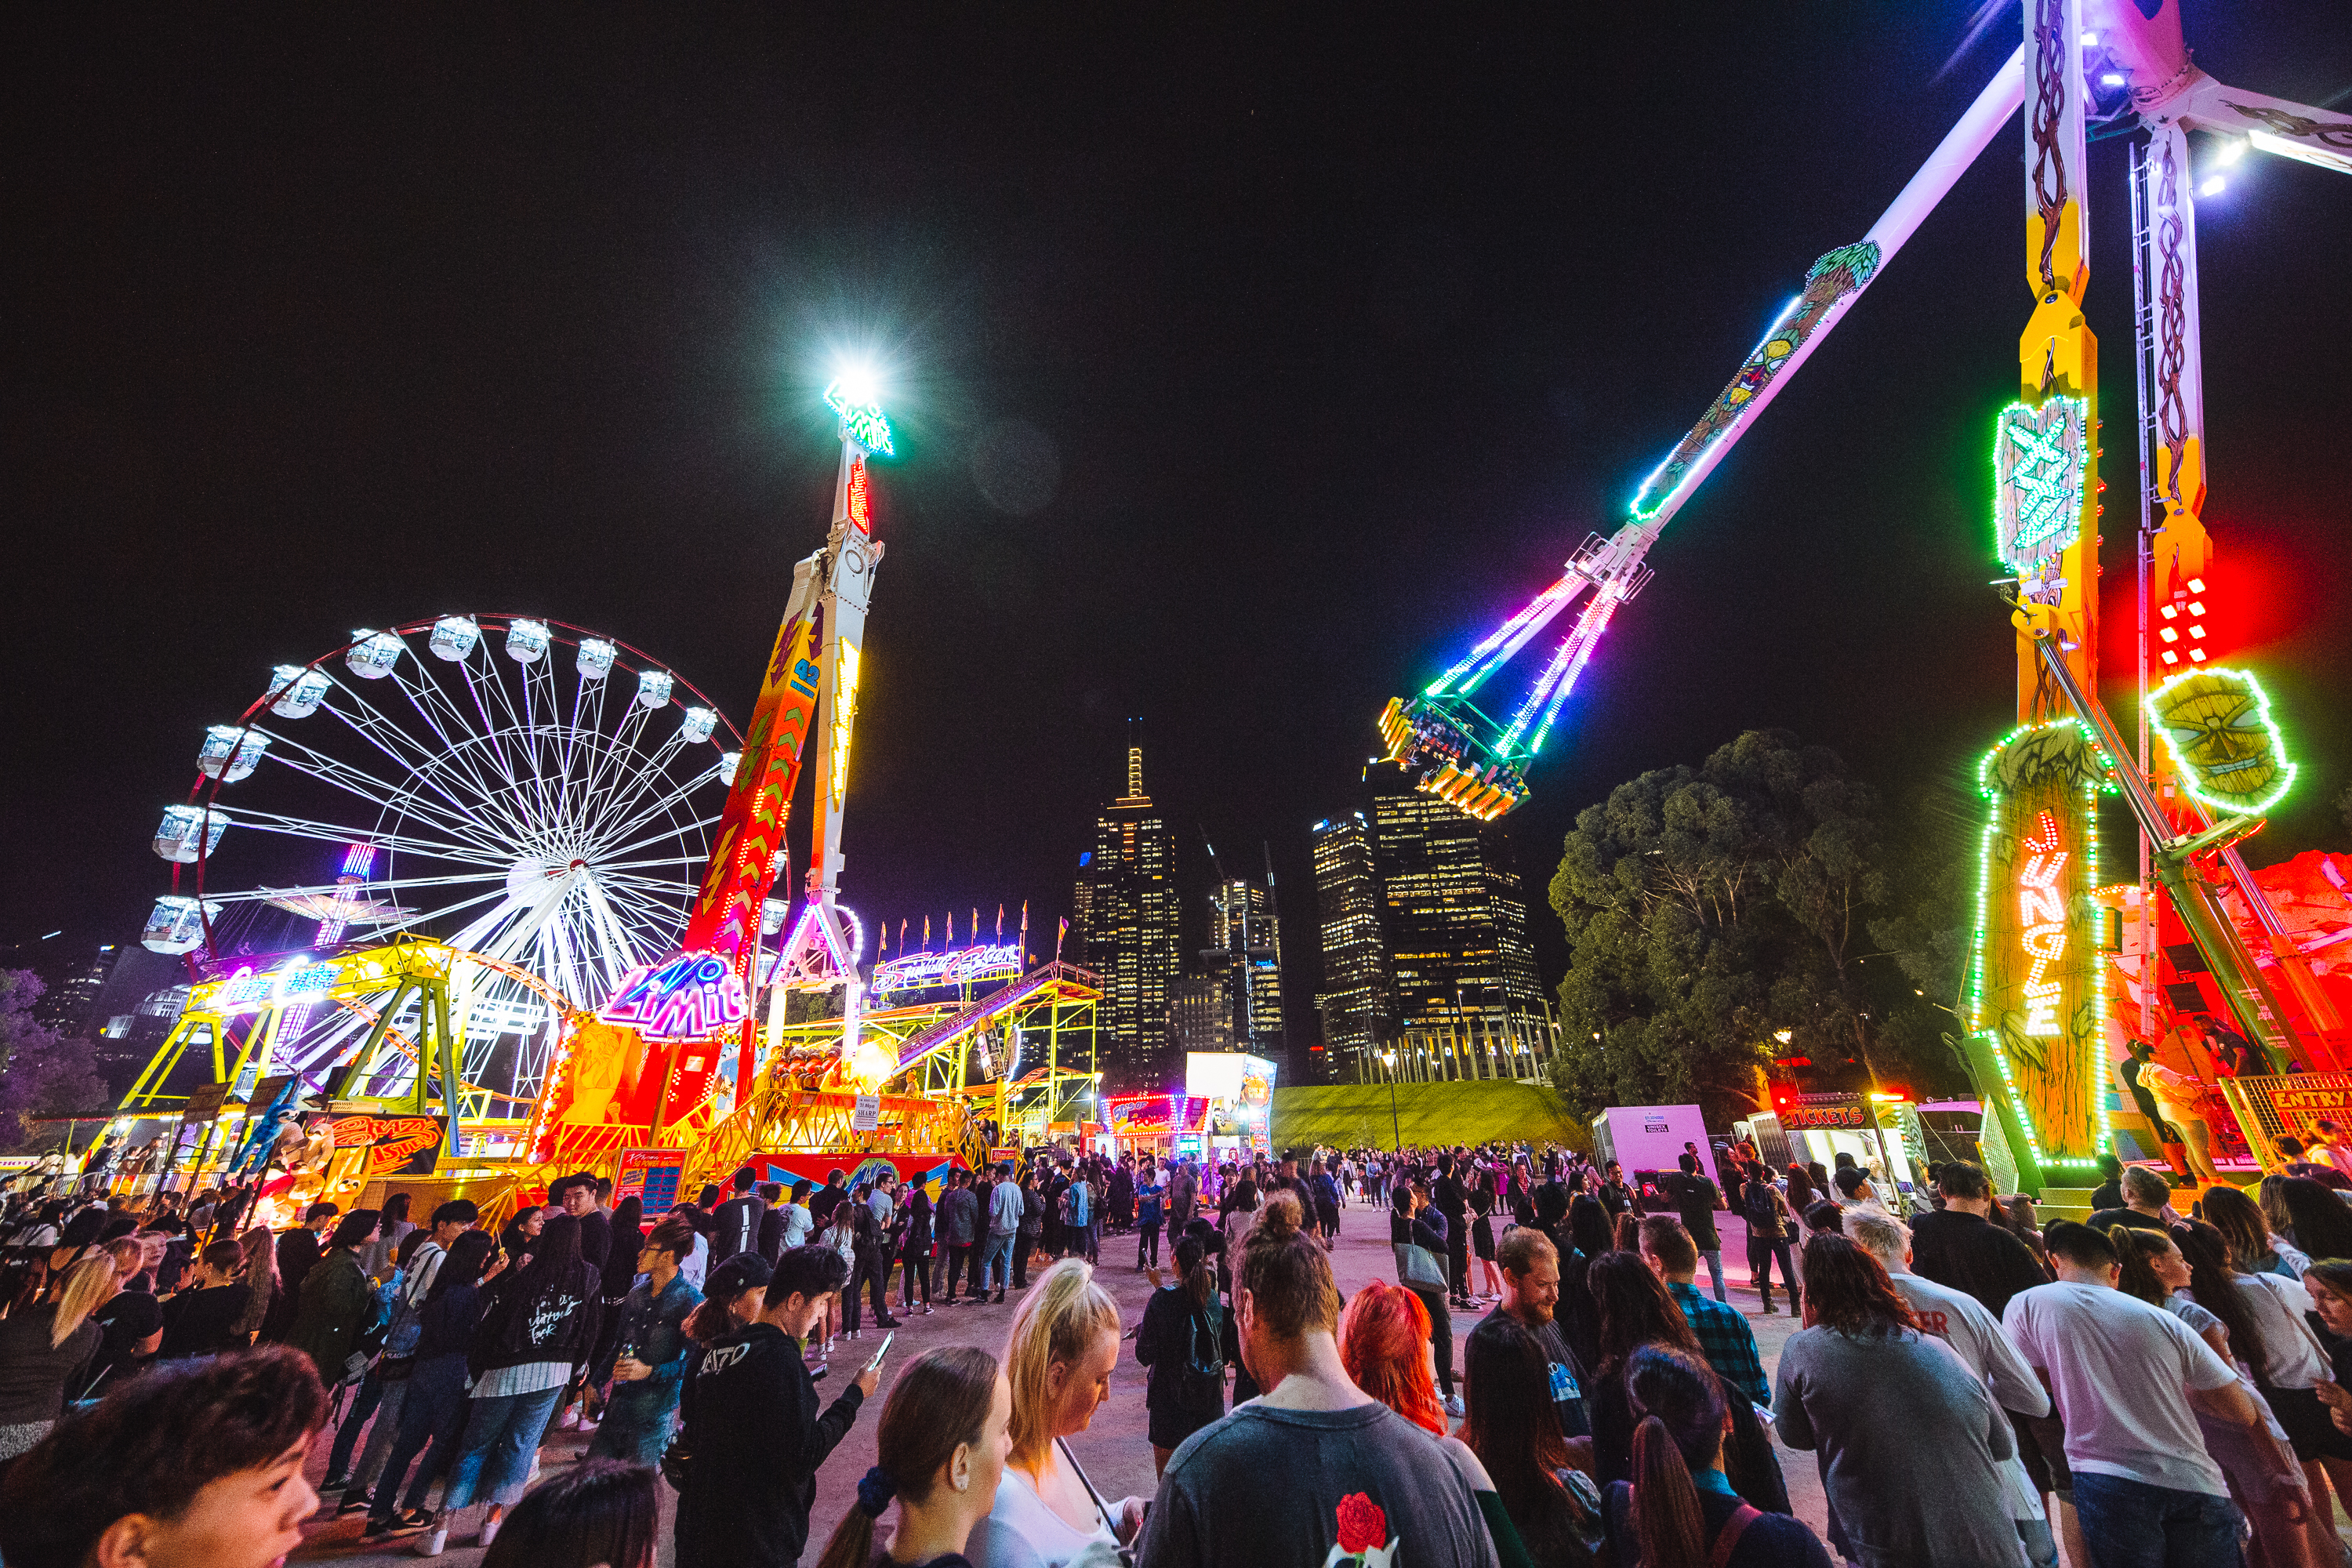 Moomba Festival night festivities